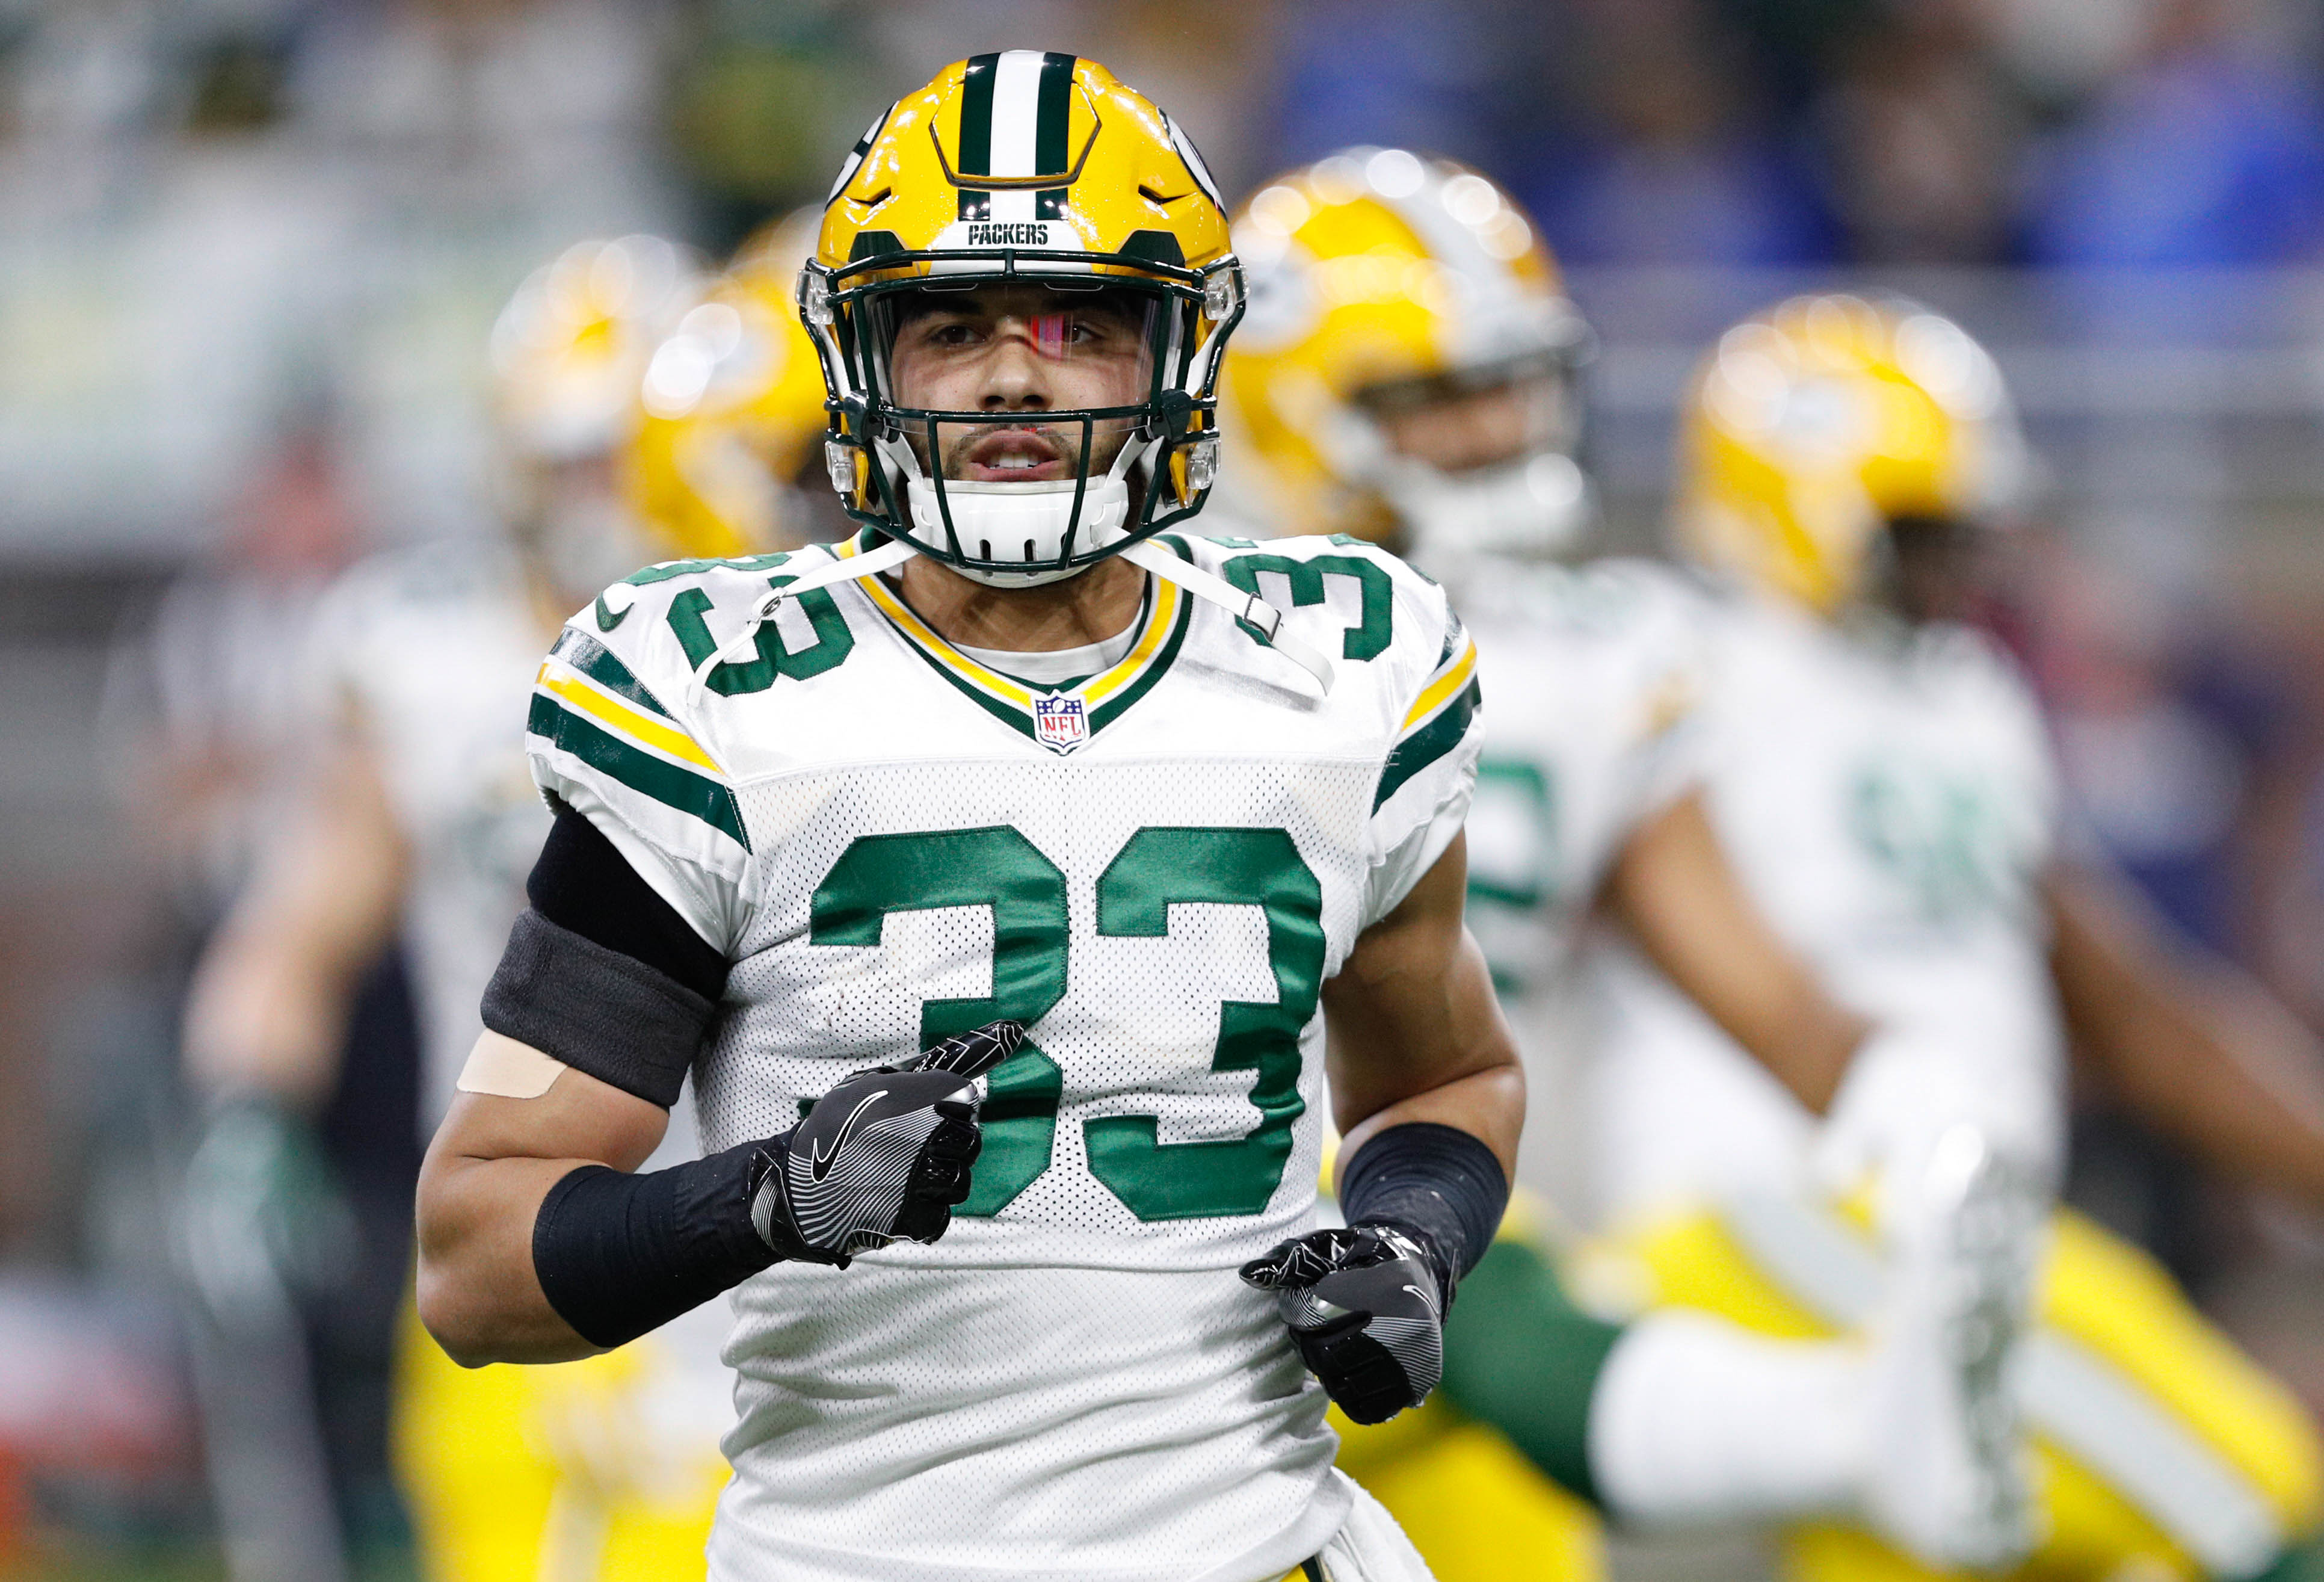 6ffbf2ba9 ... USA Green Bay Packers defensive Former Packers S Micah Hyde finding  success with Buffalo Bills Micah Hyde Jersey Chicago Bears Free Agency 2017  Top Five ...